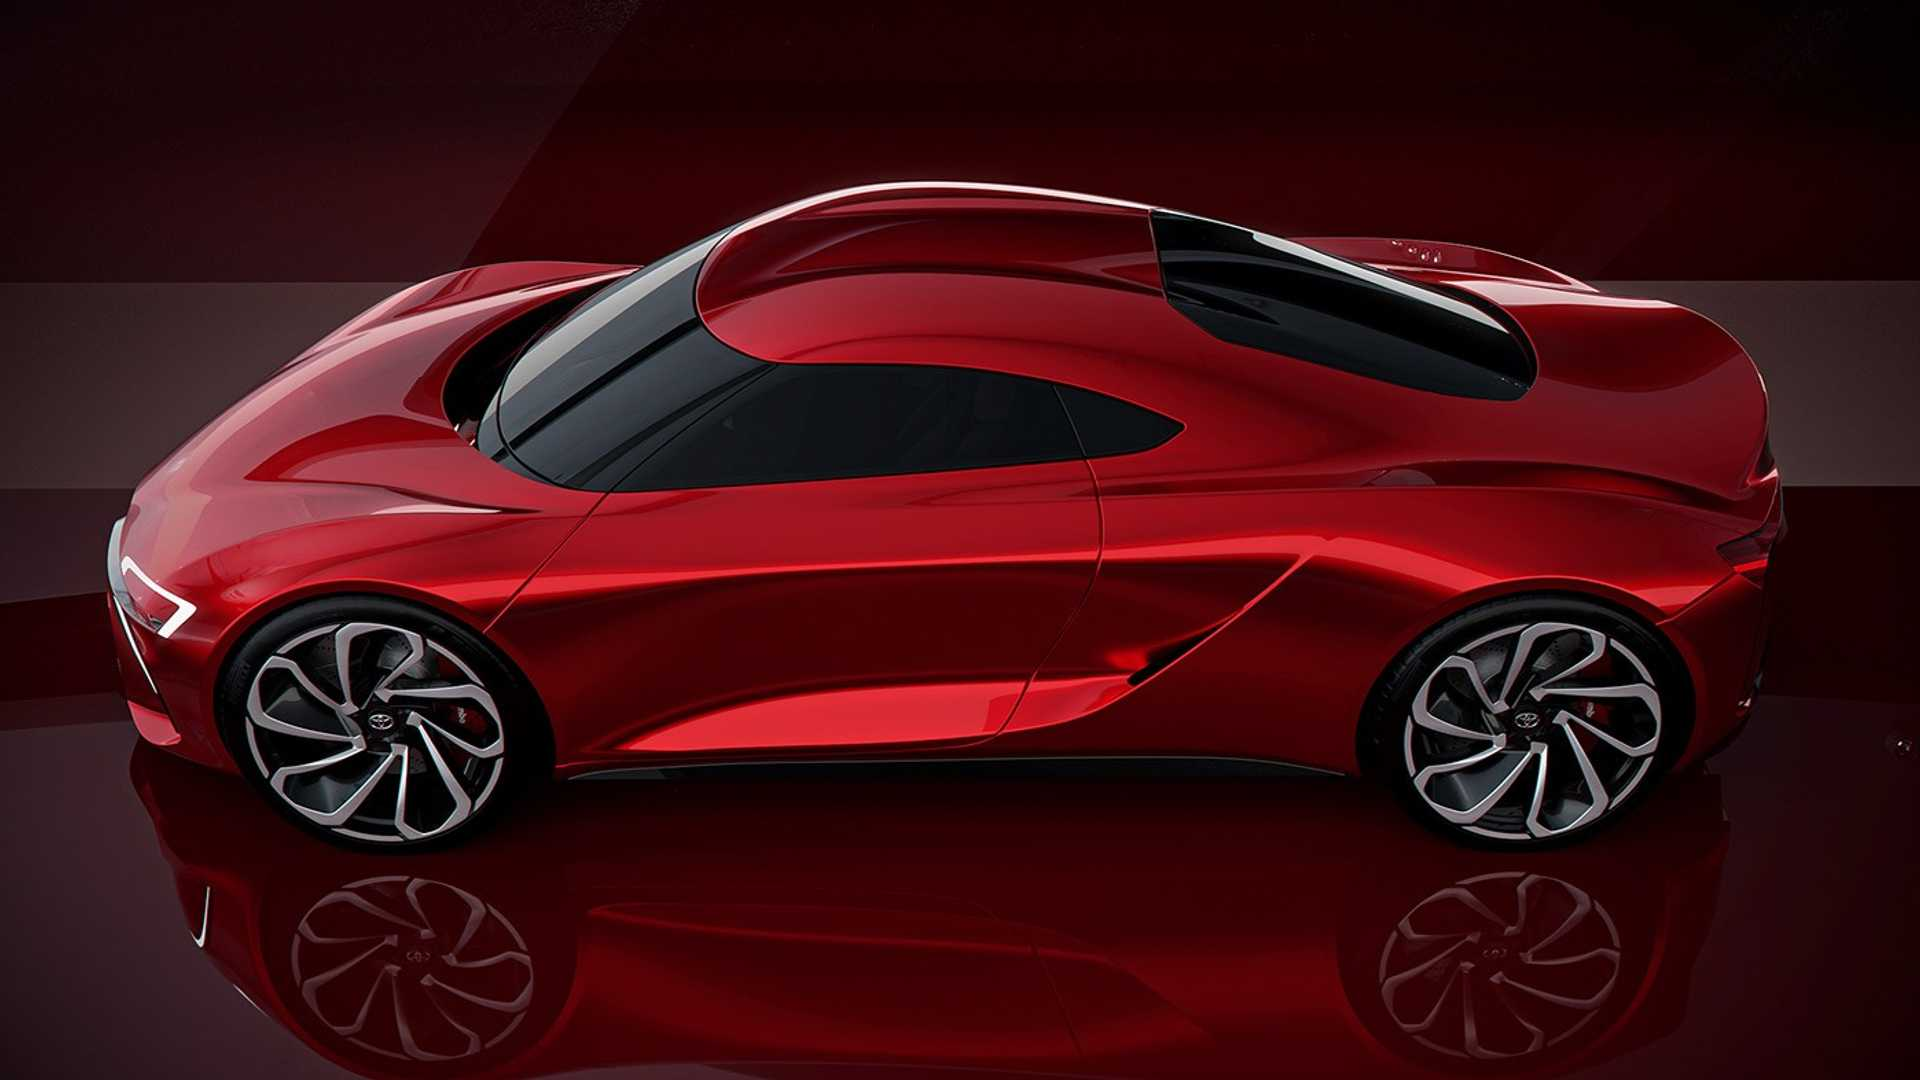 toyota supra chief engineer wants new mr2 with the help of porsche toyota supra chief engineer wants new